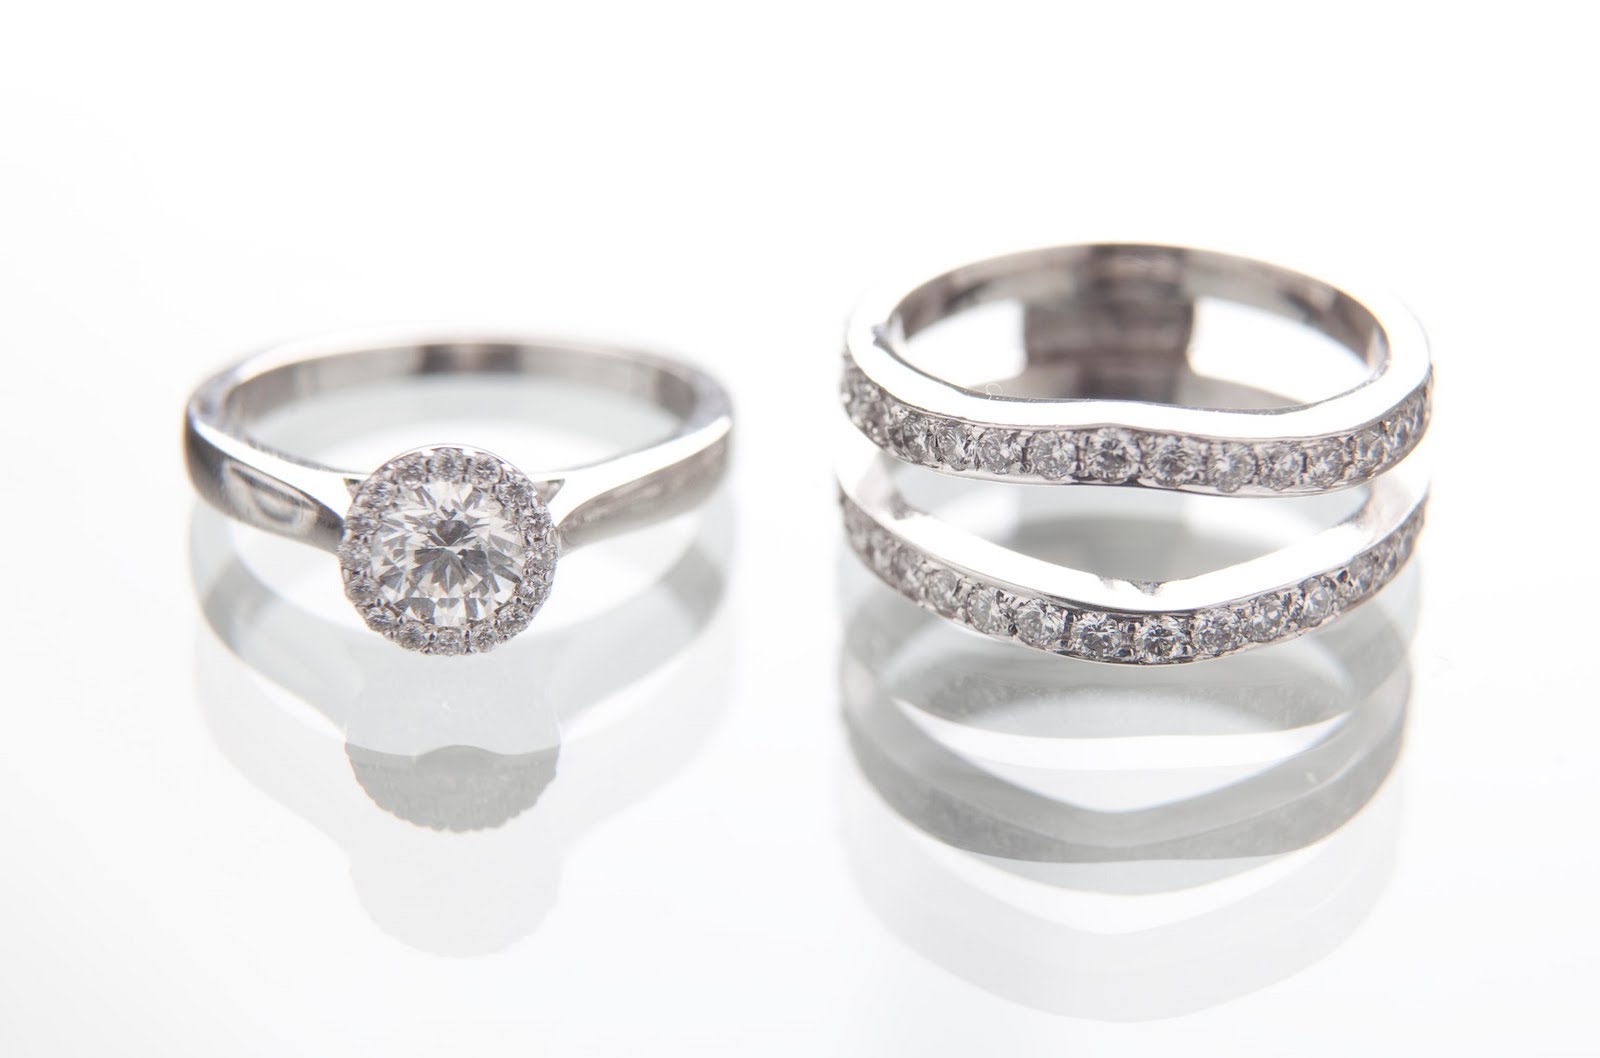 edith s simple wedding rings for women